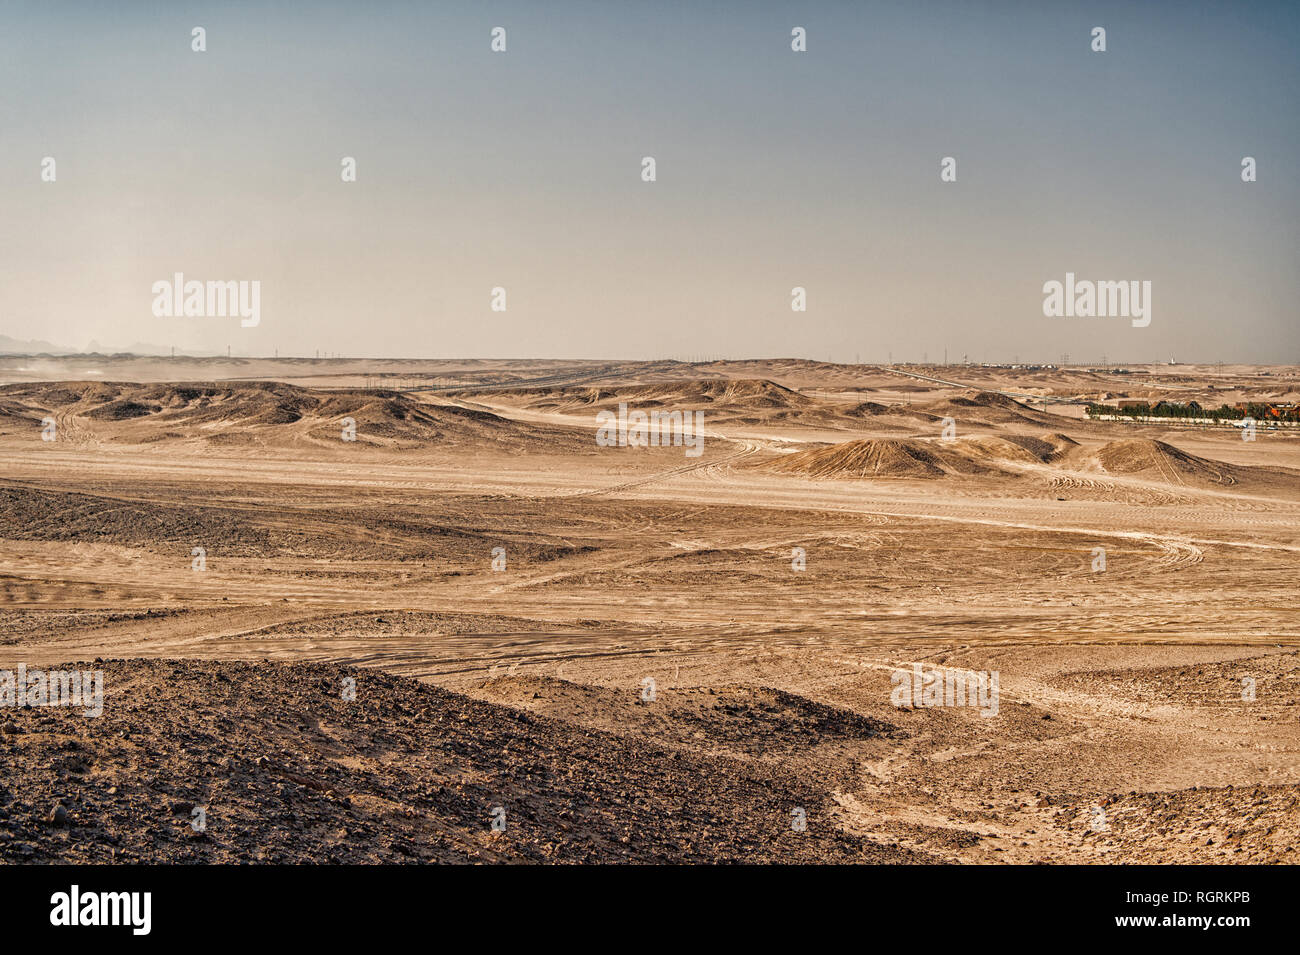 Desert landscape on clear blue sky background. Dune land with dry terrain surface. Ecology and global warming effect. Hopelessness and lifeless concept, copy space - Stock Image